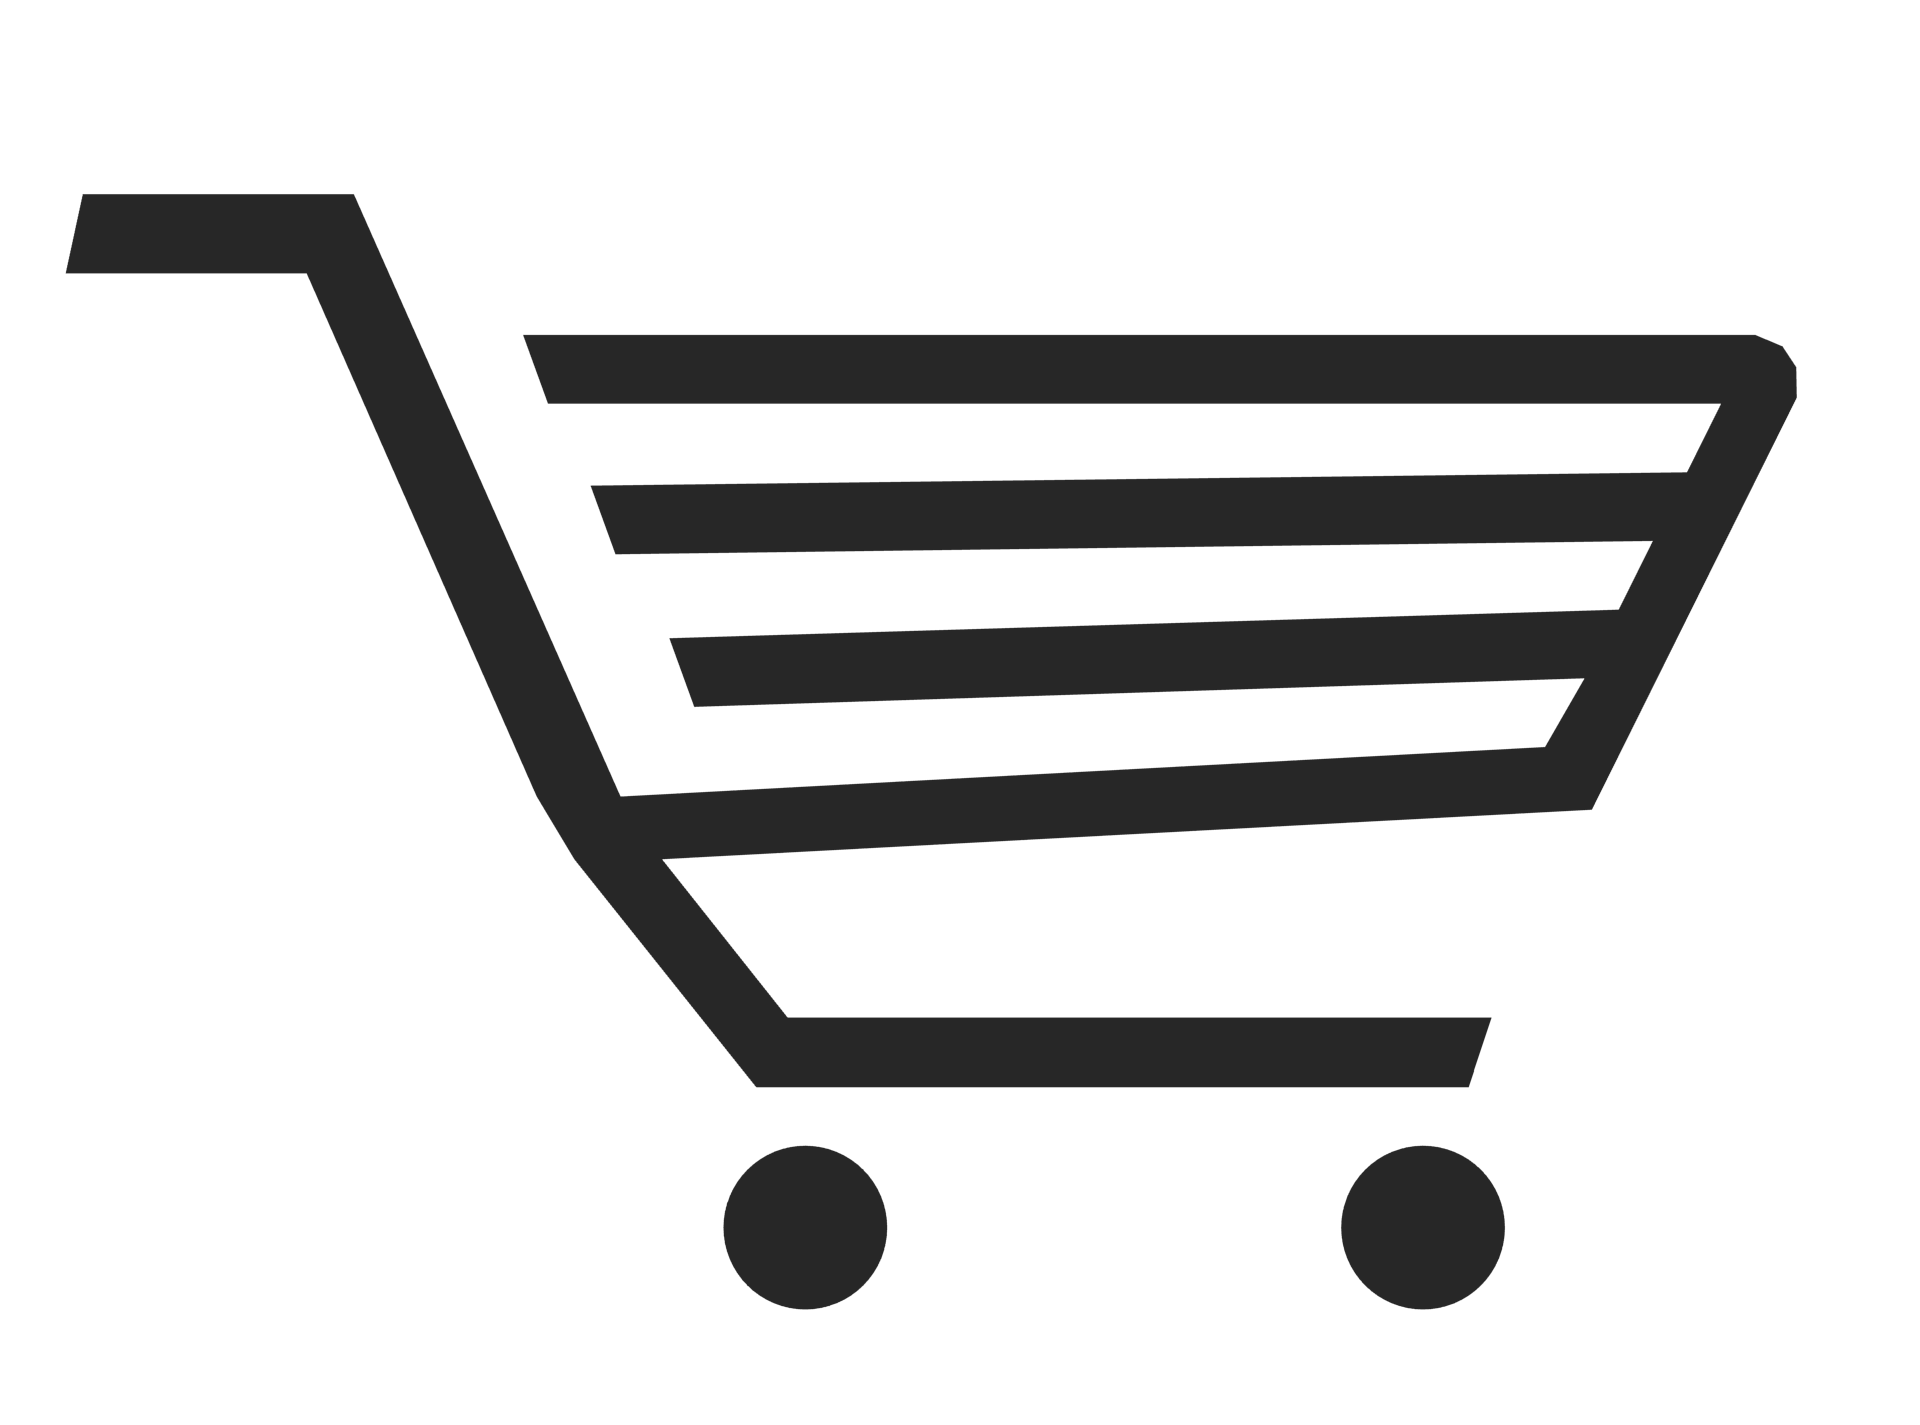 Online Shopping Cart PNG Free Commercial Use Image.